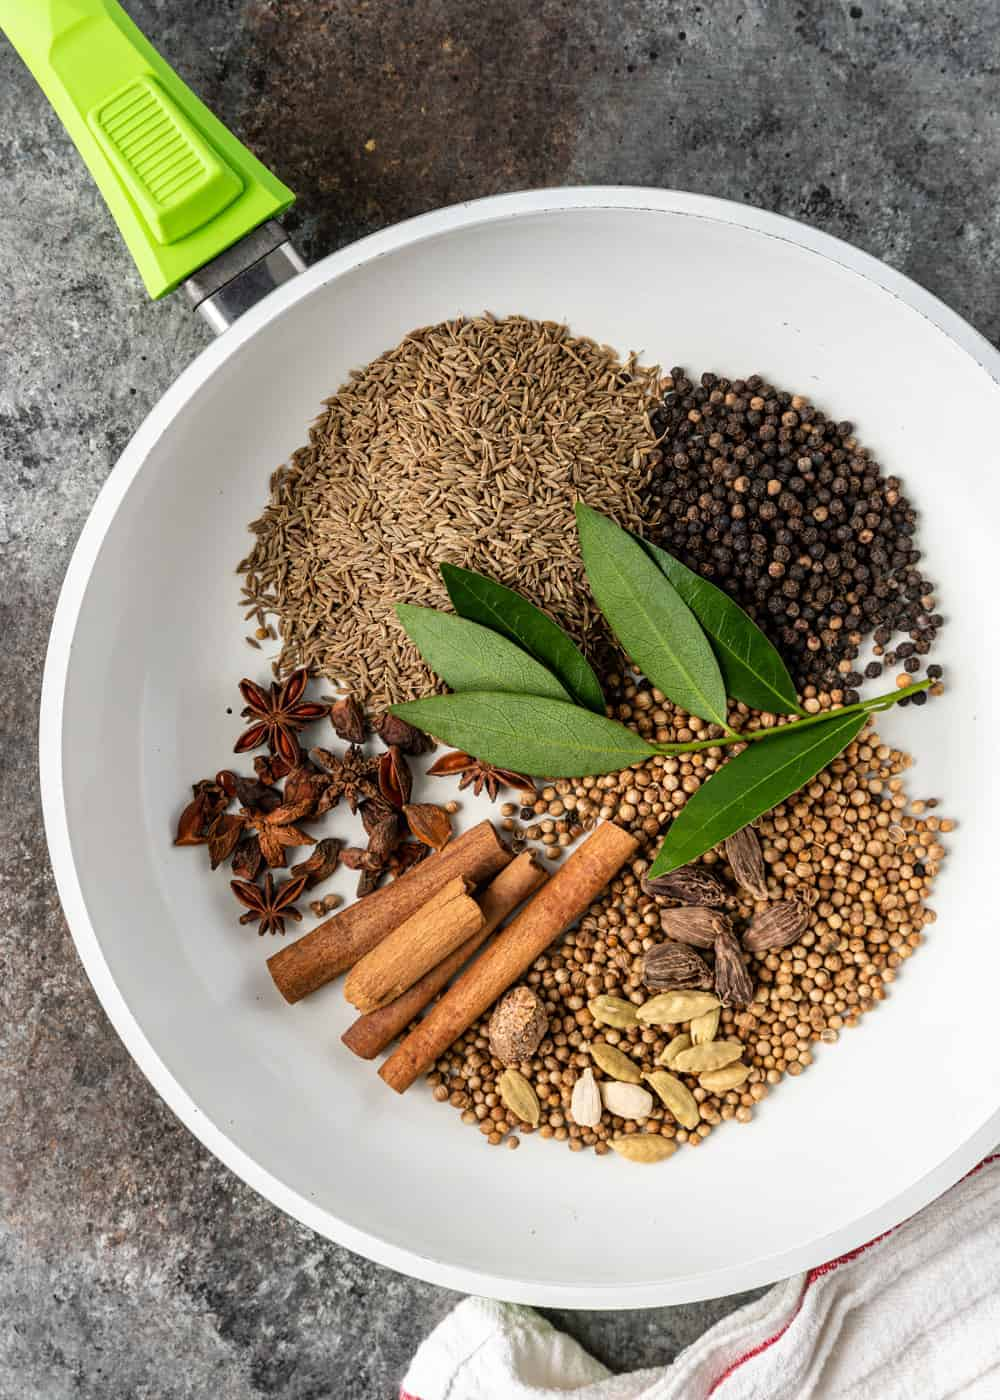 coriander, star anise, peppercorns, bay leaves, cinnamon sticks and other spices in a dry skillet